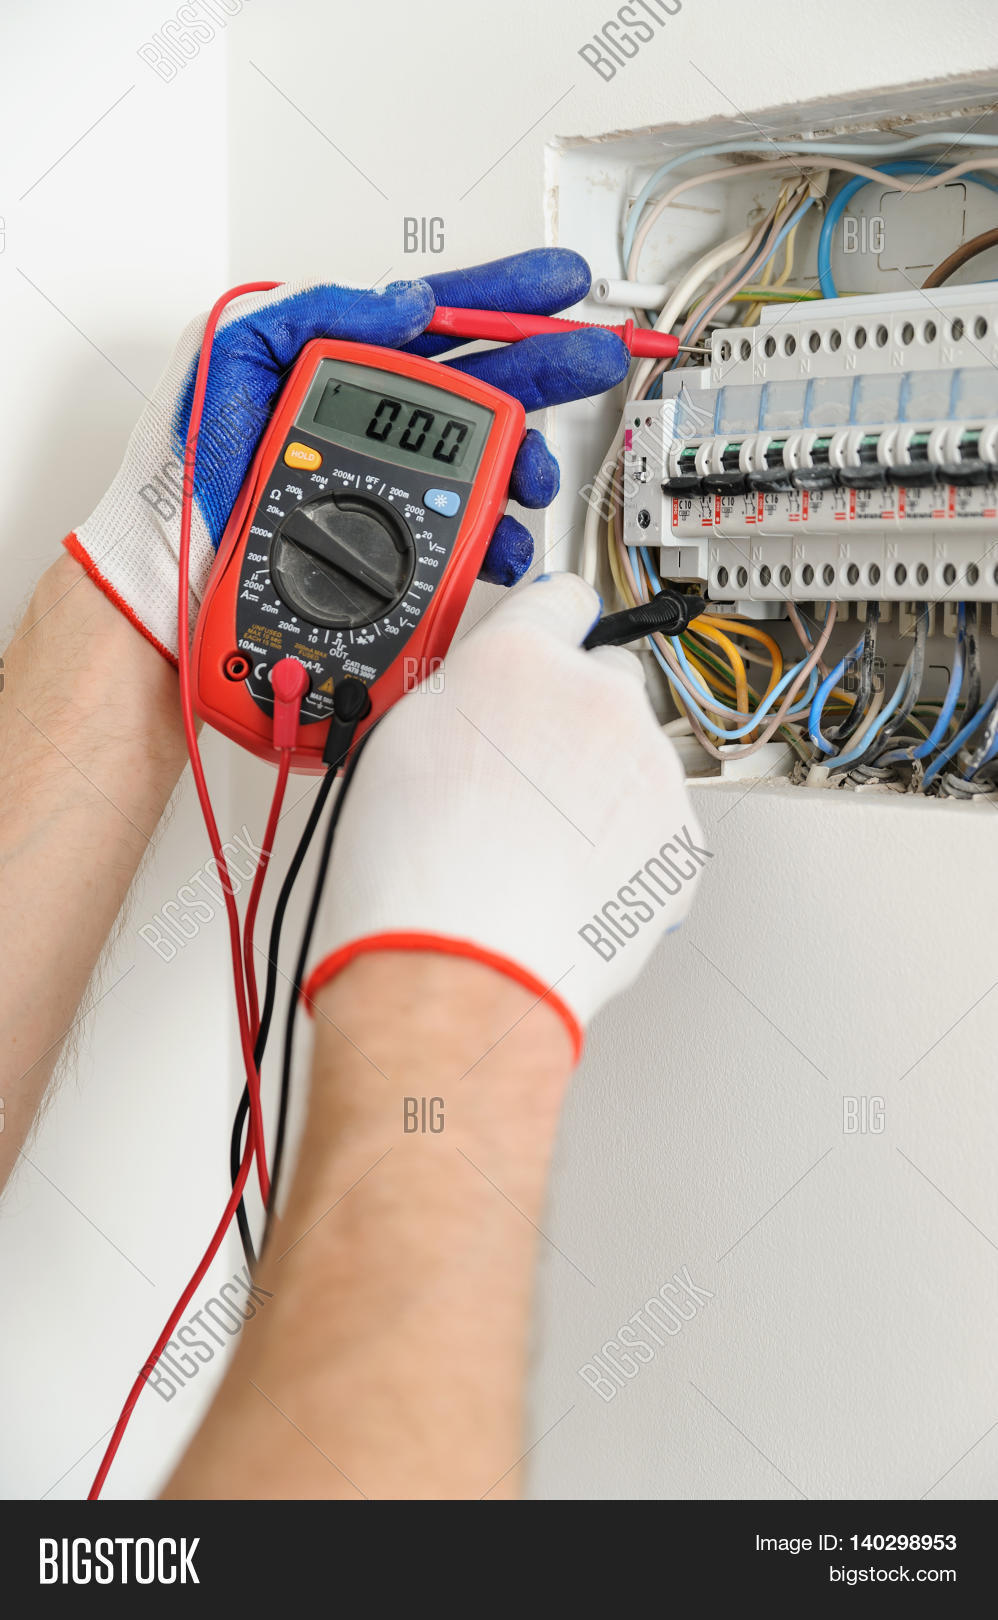 140298953 how to test fuse box with multimeter efcaviation com how to test a fuse block at honlapkeszites.co